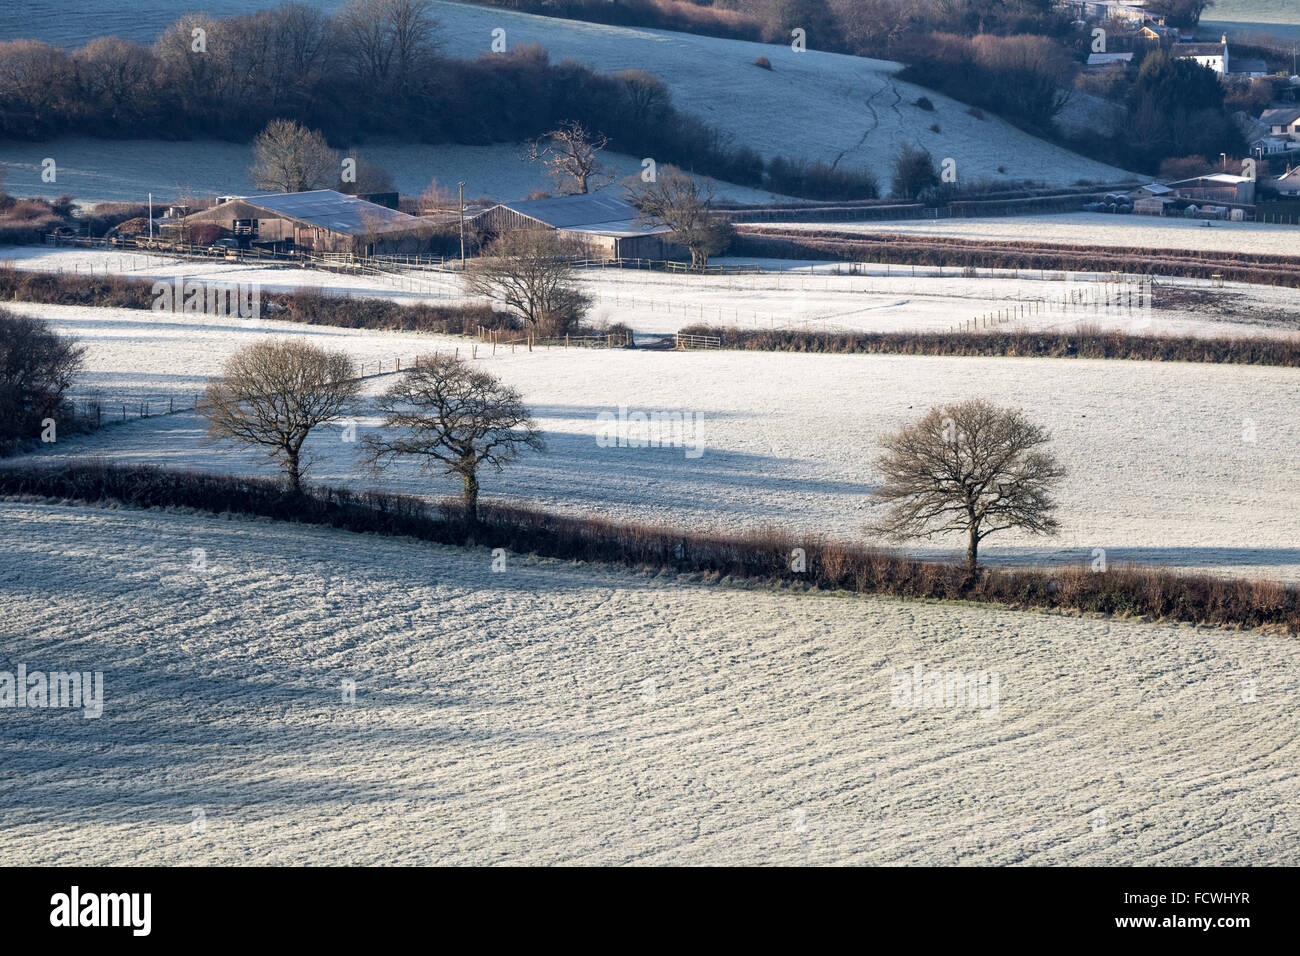 Frosty Torridge Valley: View From Torrington Across the River Valley Towards Taddiport, With Shadows and Hedges. - Stock Image